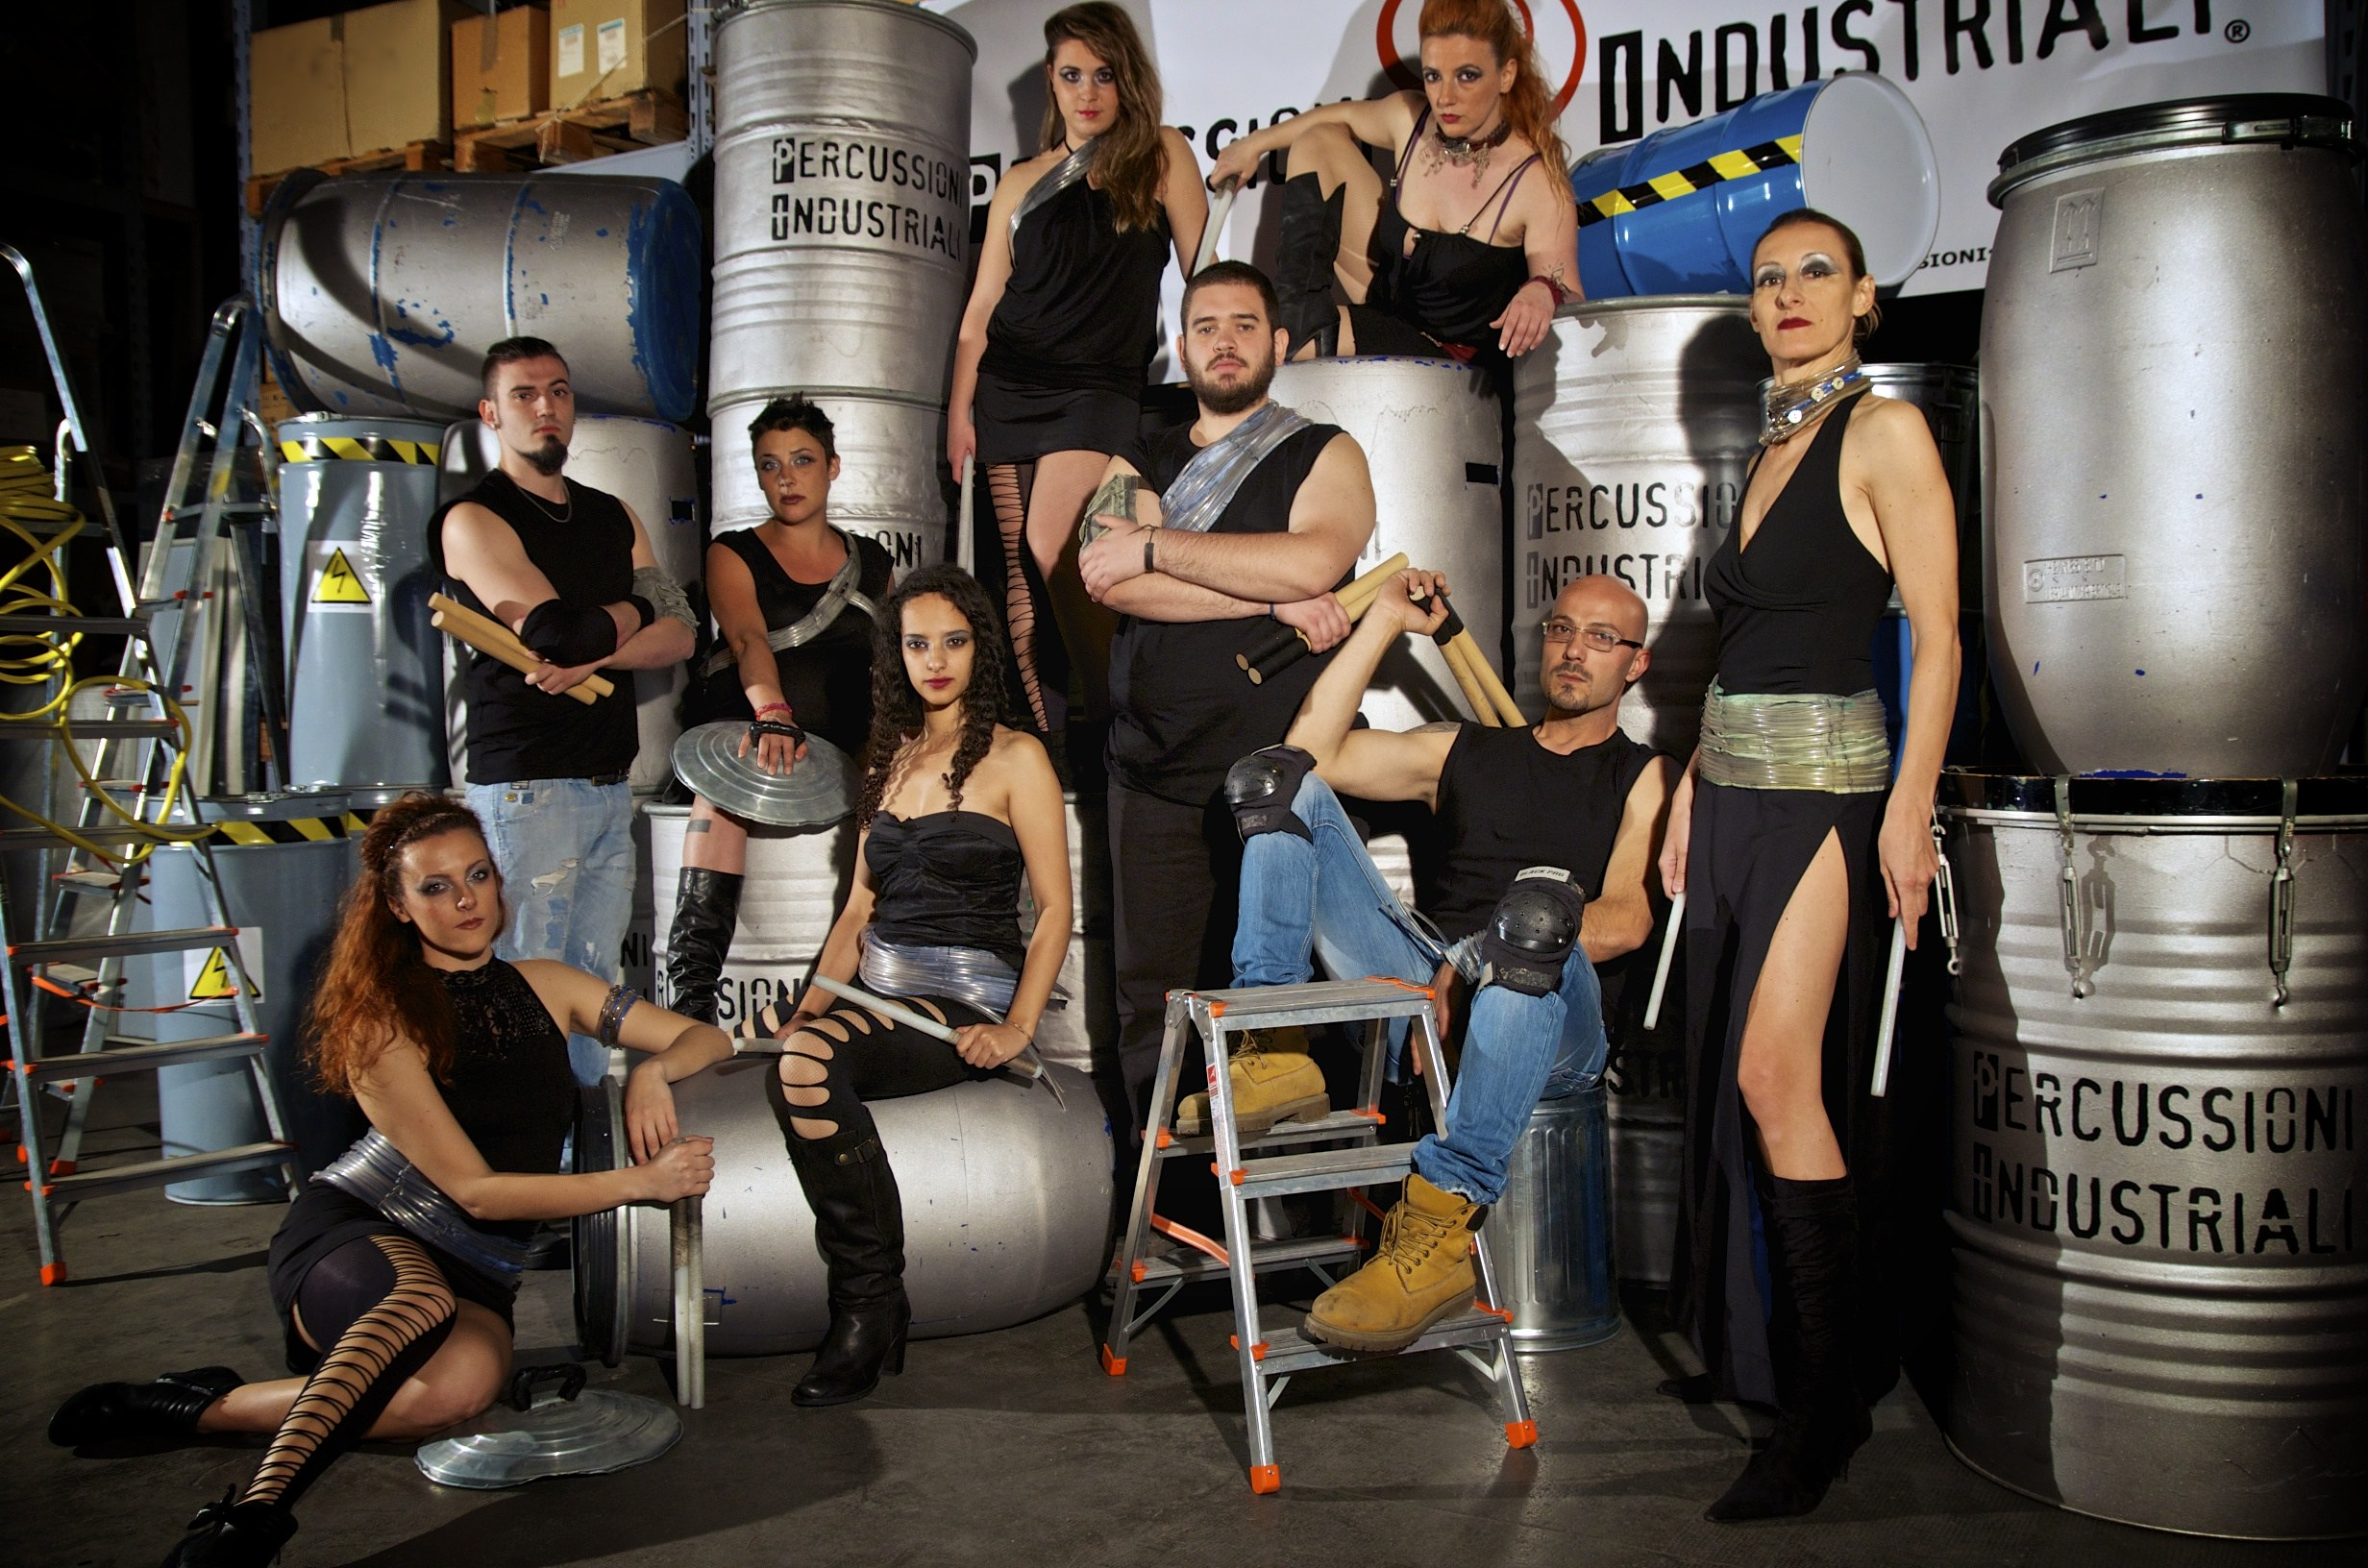 Percussioni Industriali Set Group